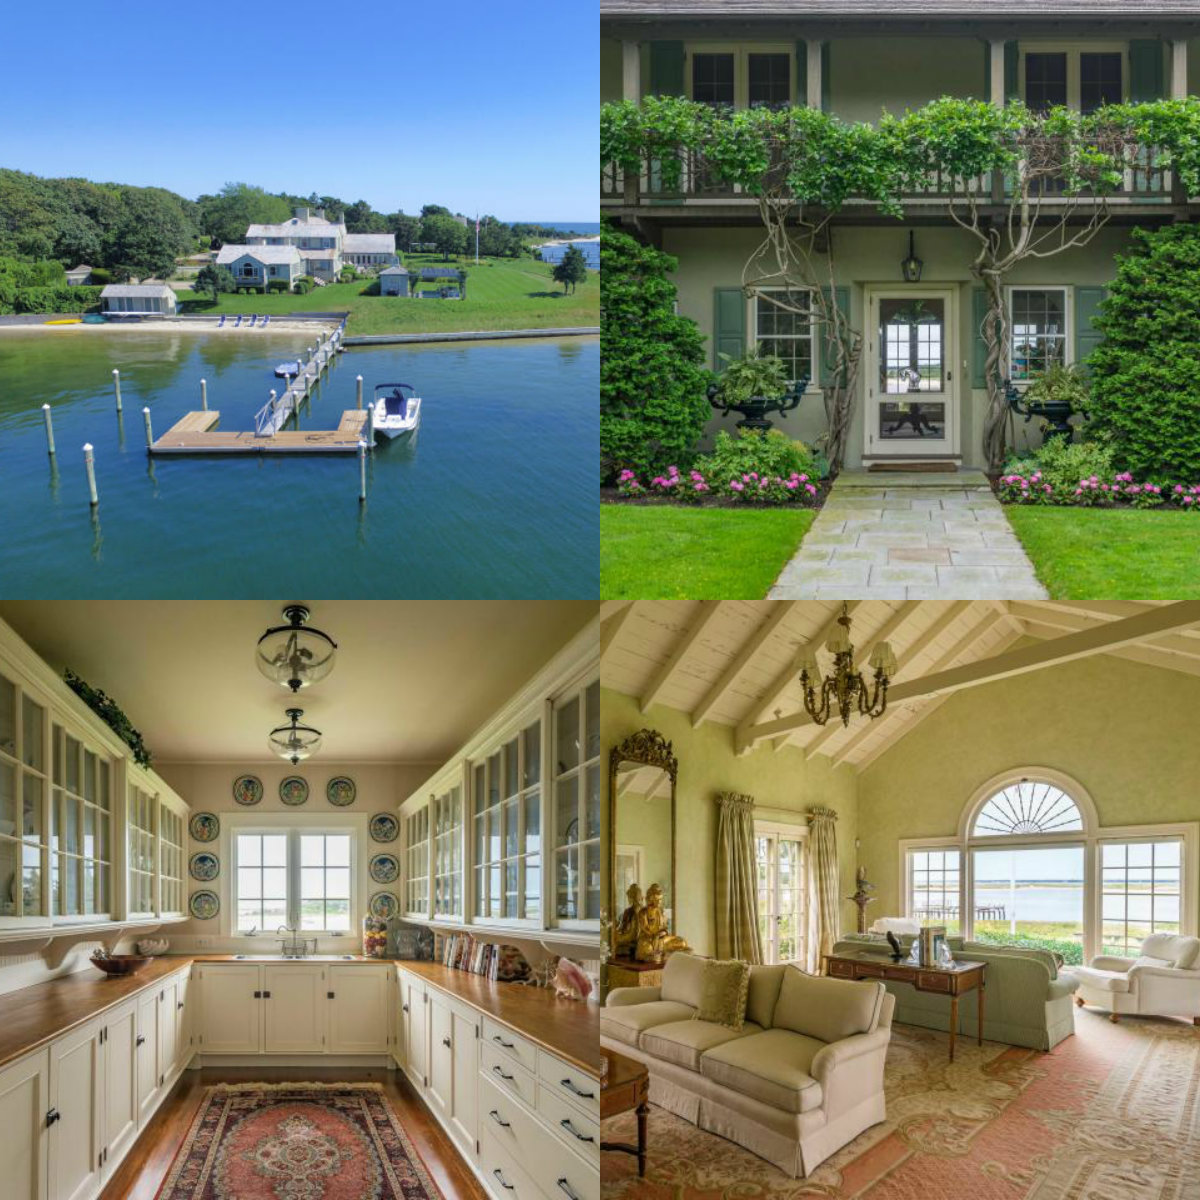 4 images of 986 Sea View Ave in Osterville inCape Cod MA